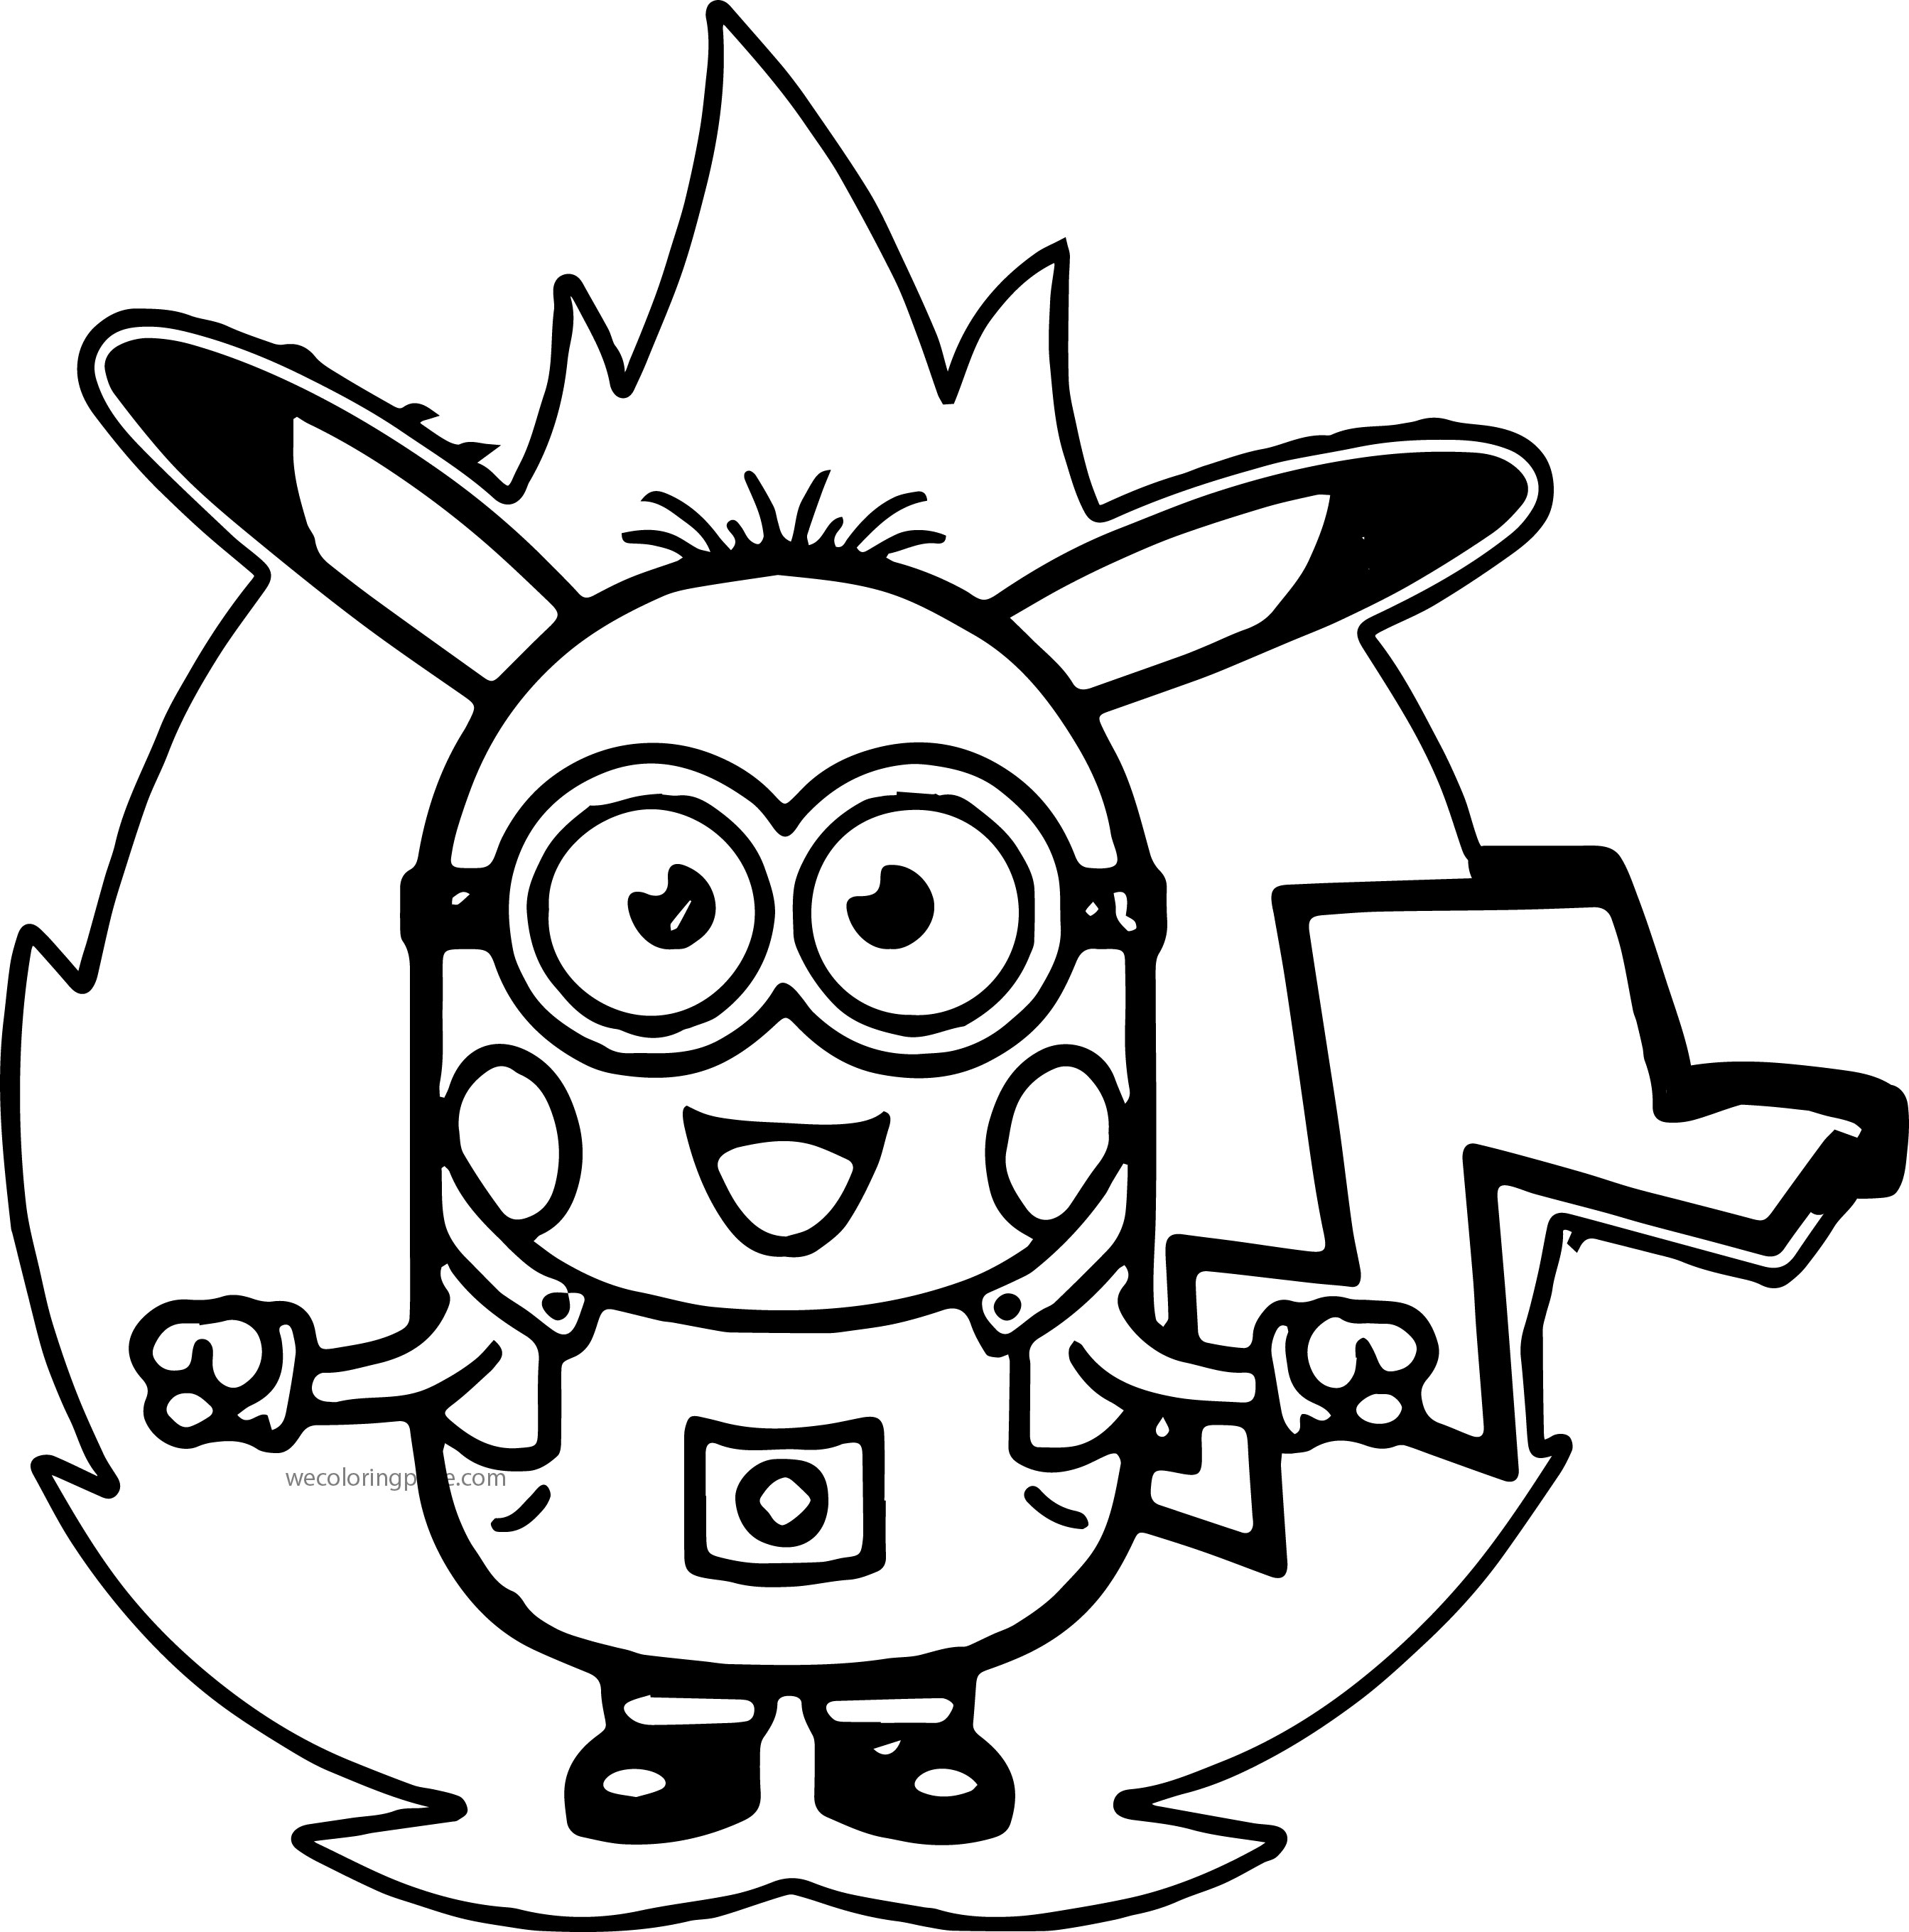 Coloring games of pokemon - Minion Pokemon Coloring Pages